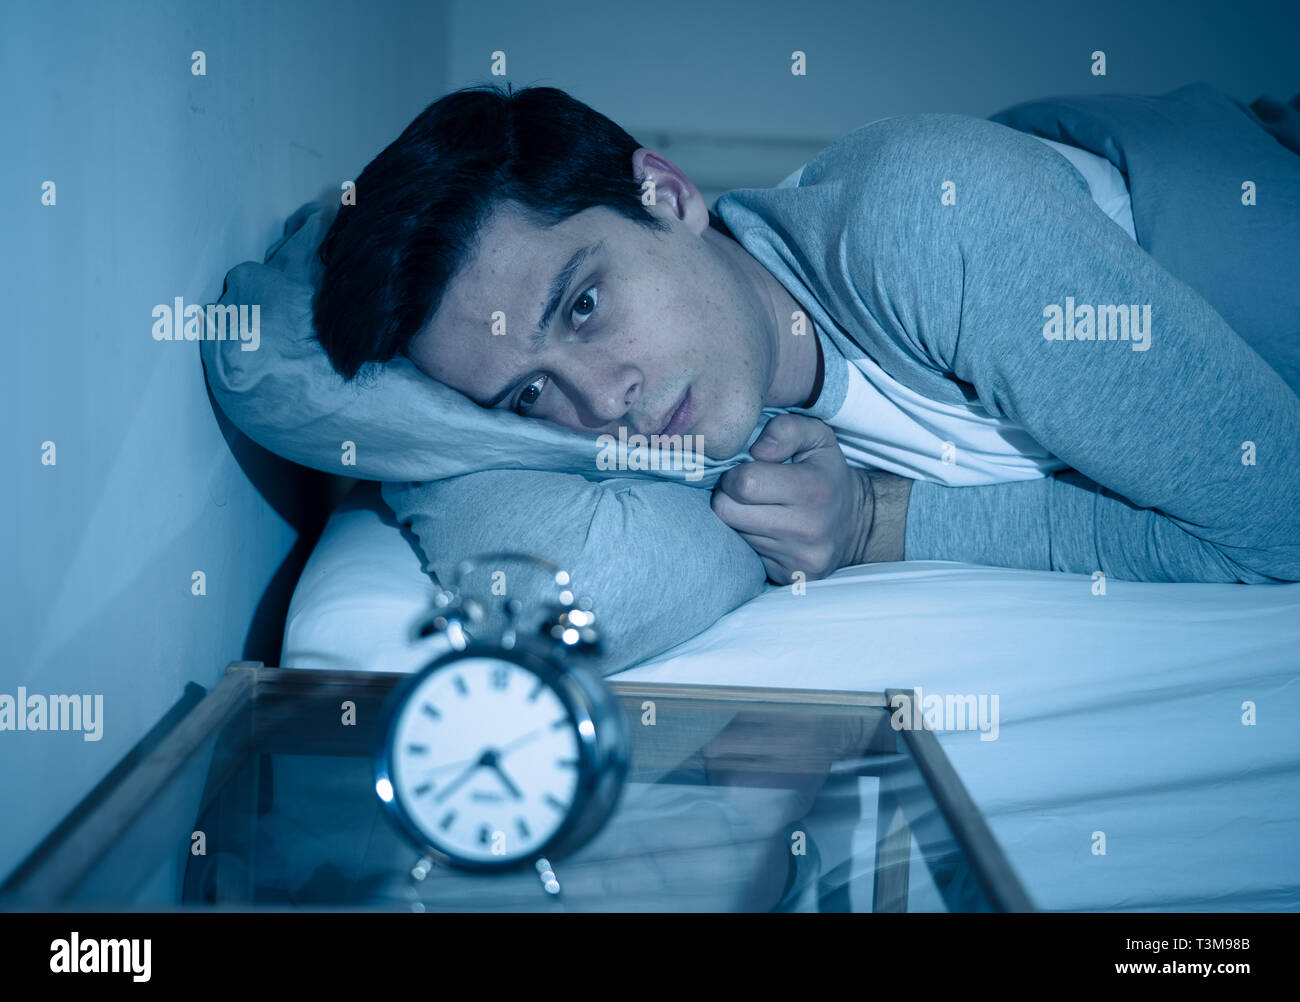 Sleepless and desperate young caucasian man awake at night not able to sleep, feeling frustrated and worried looking at clock suffering from insomnia  - Stock Image